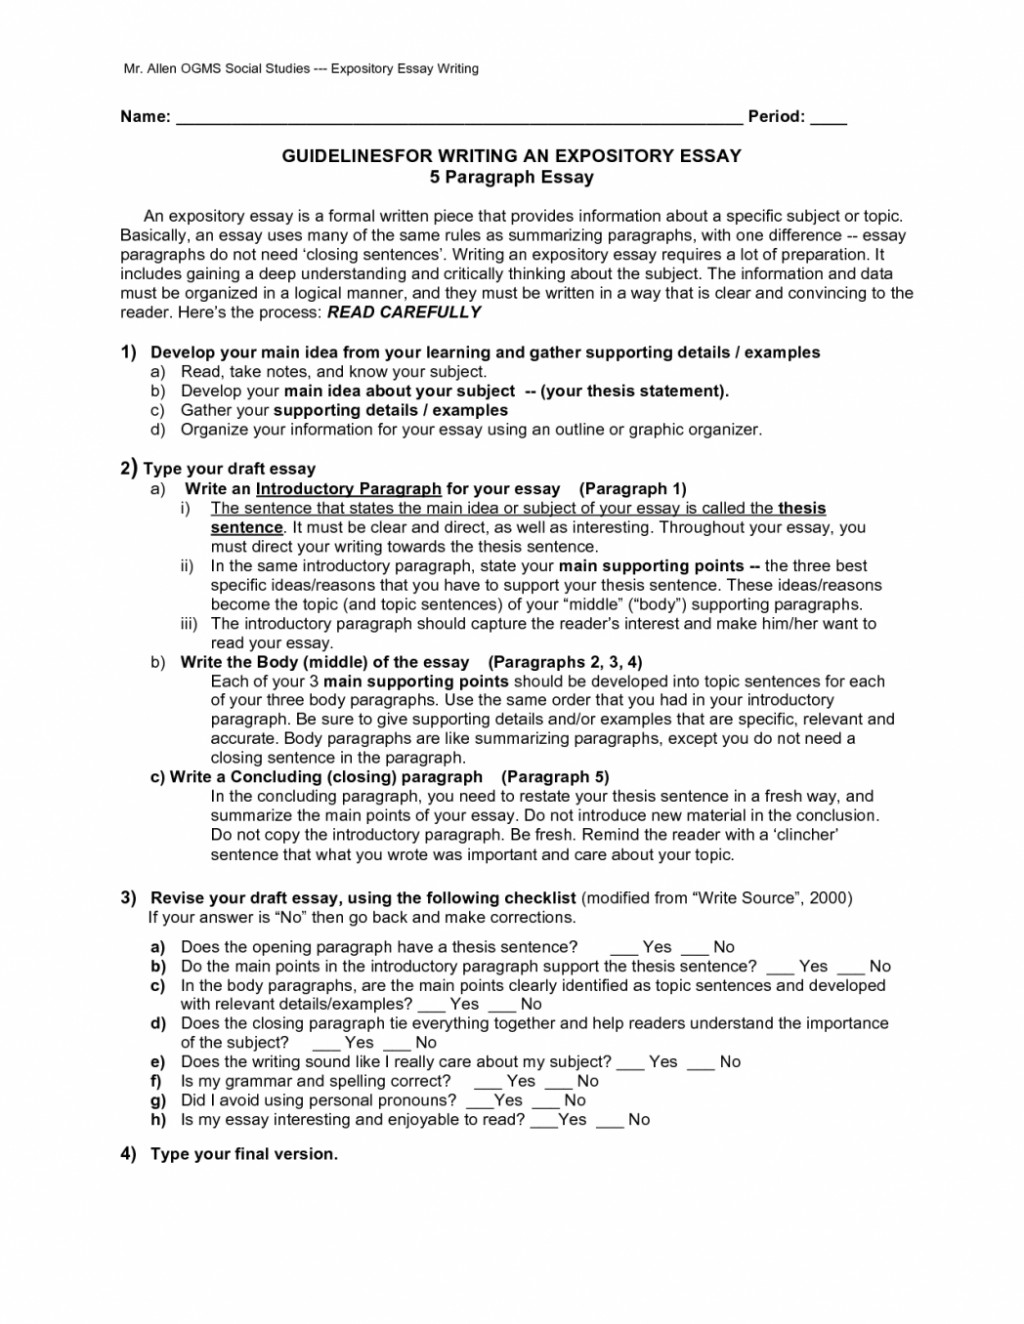 014 Essay Example Sample Of Cause And Effect From Thesis To Writing Howenage Pregnancy Persuasive Expository Statementmplate Hda About Argumentative In The Philippines 1048x1356 Astounding Teenage Photo Tagalog Introduction Causes Large